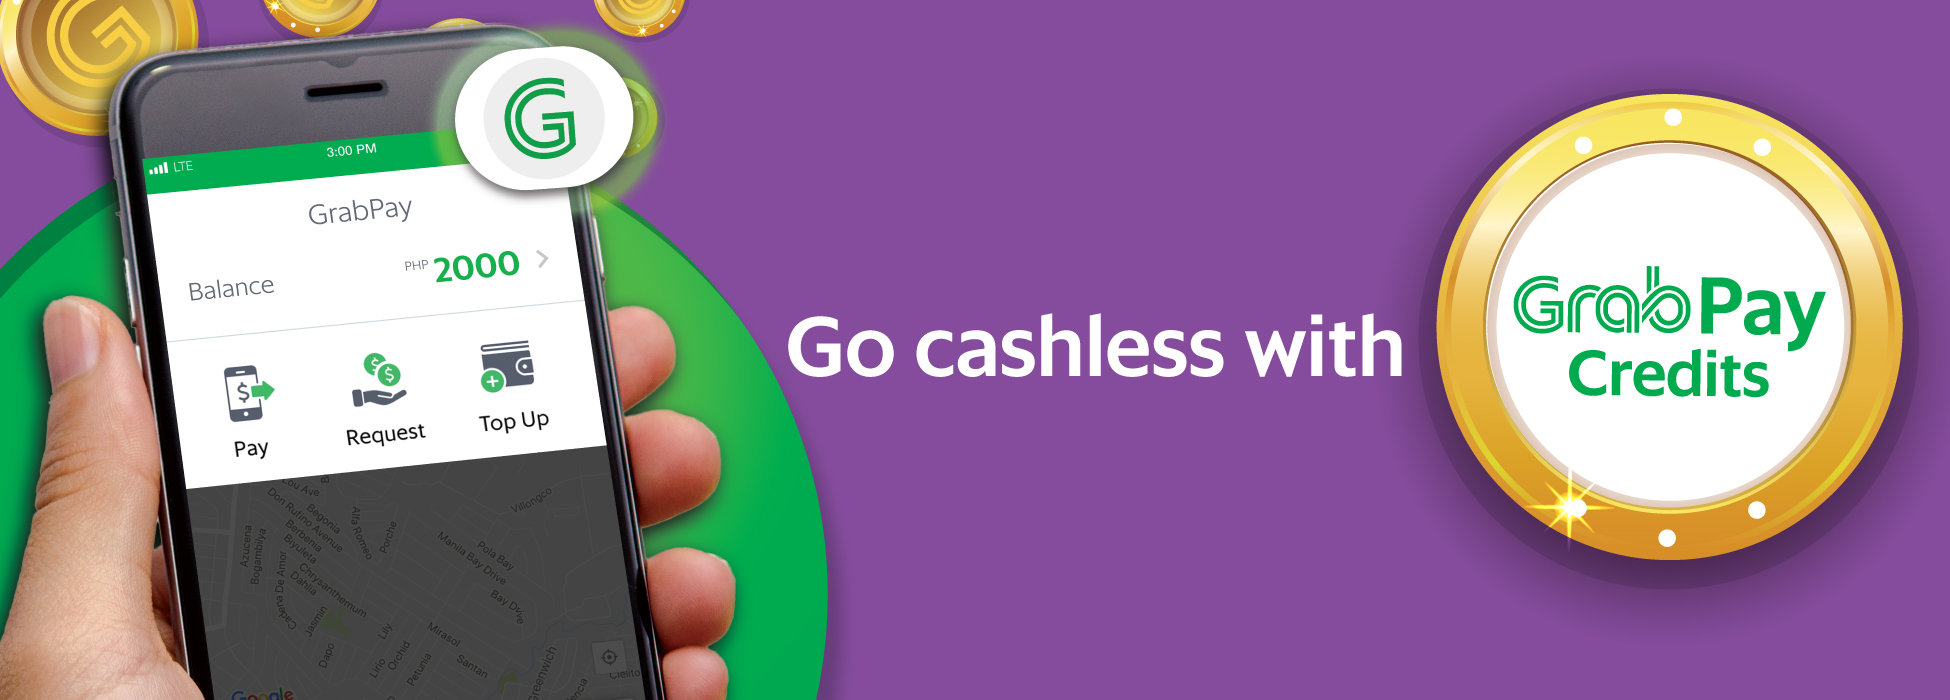 Go cashless with GrabPay Credits! | Grab PH